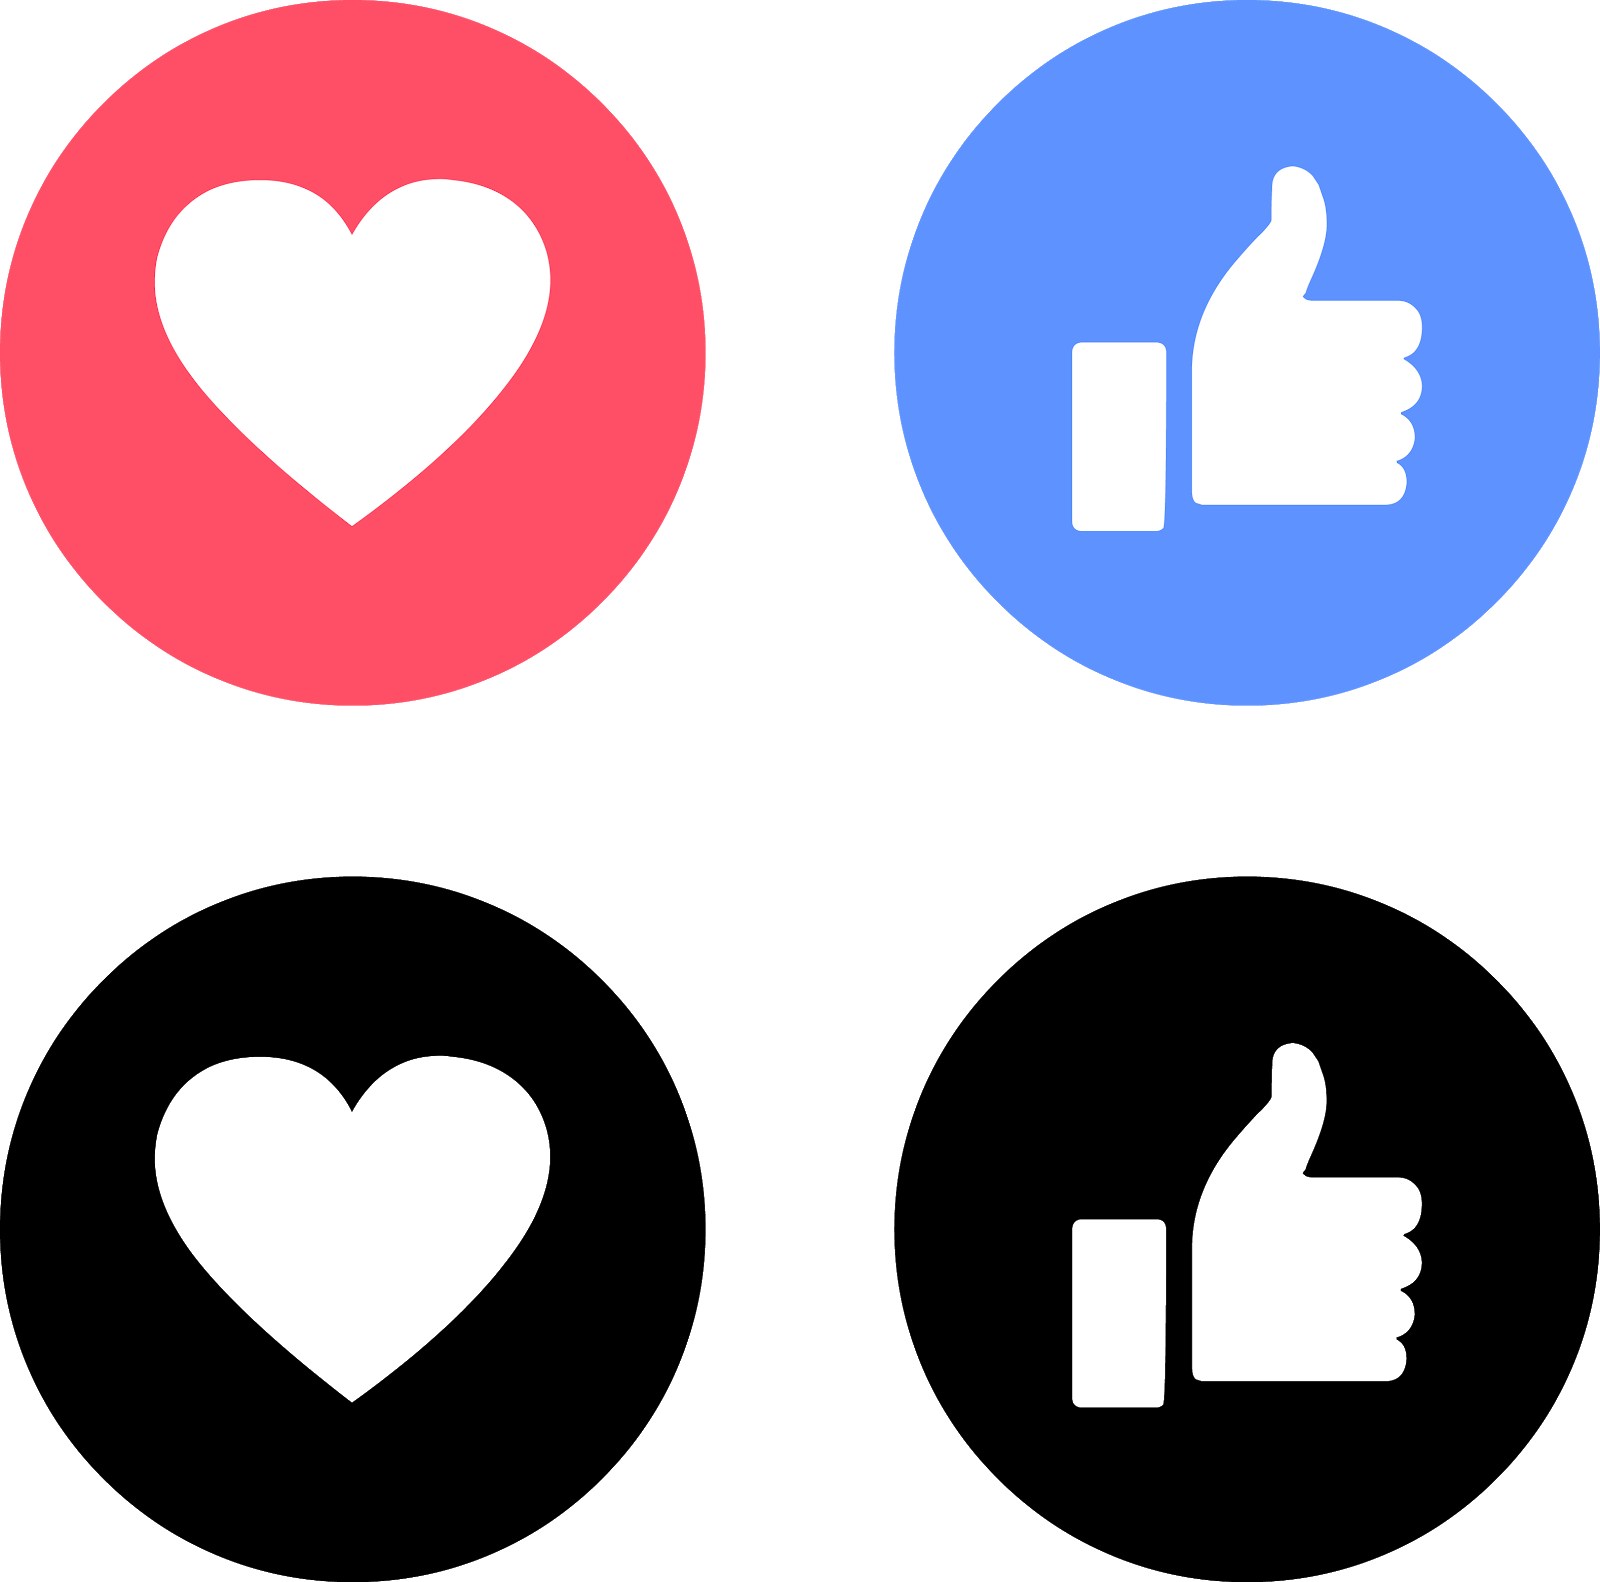 download like love facebook icons svg eps png psd ai - el